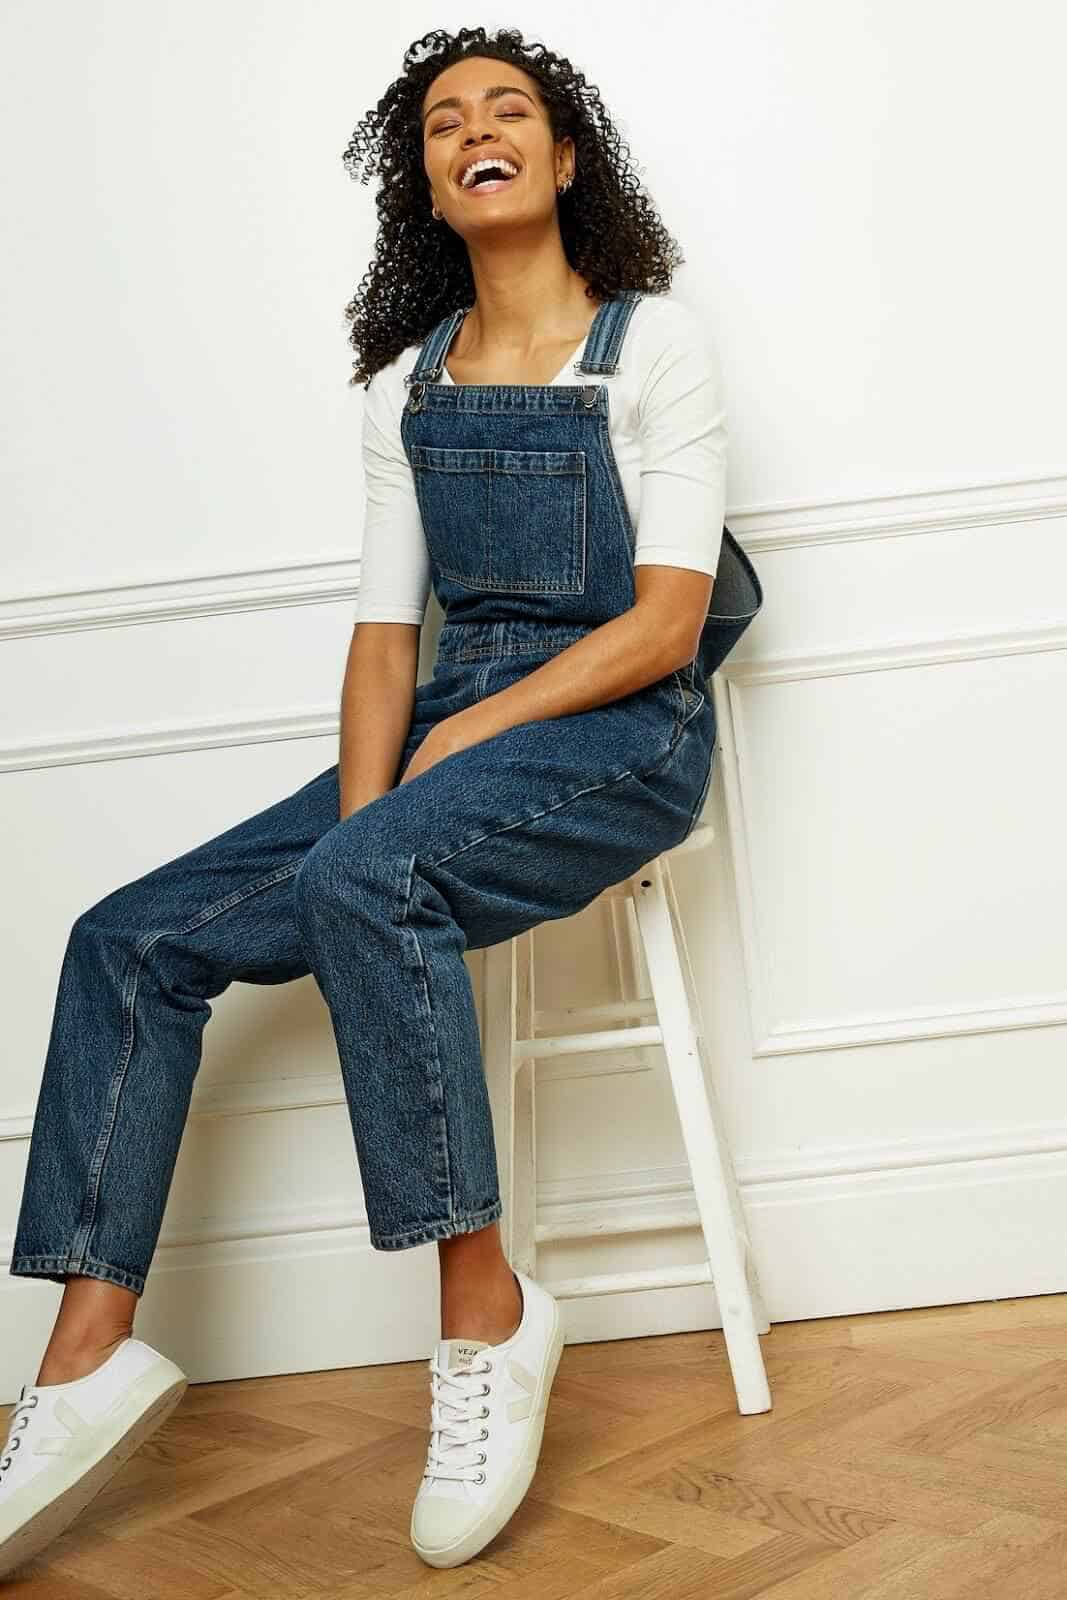 Green is the new blue! For sustainable ethical jeans that is. We're so impressed with these brands Image by People Tree #ethicaljeans #sustainablejungle